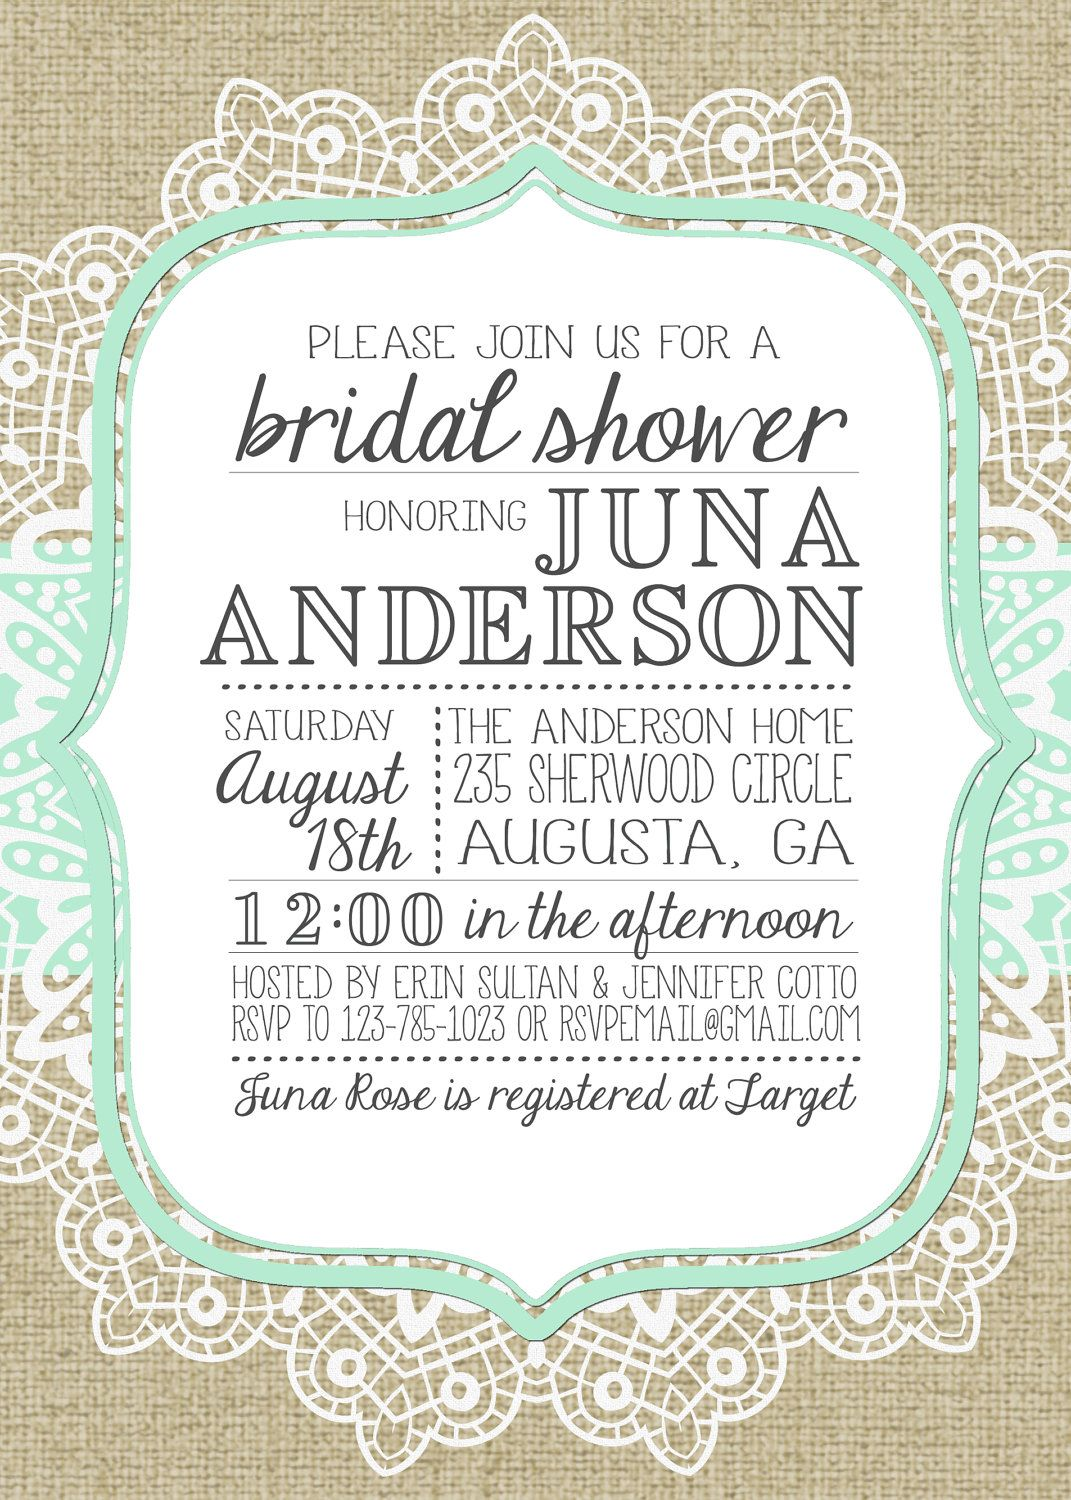 Burlap and lace bridal shower invitationbut for wedding invite burlap and lace bridal shower invitationbut for wedding invite instead stopboris